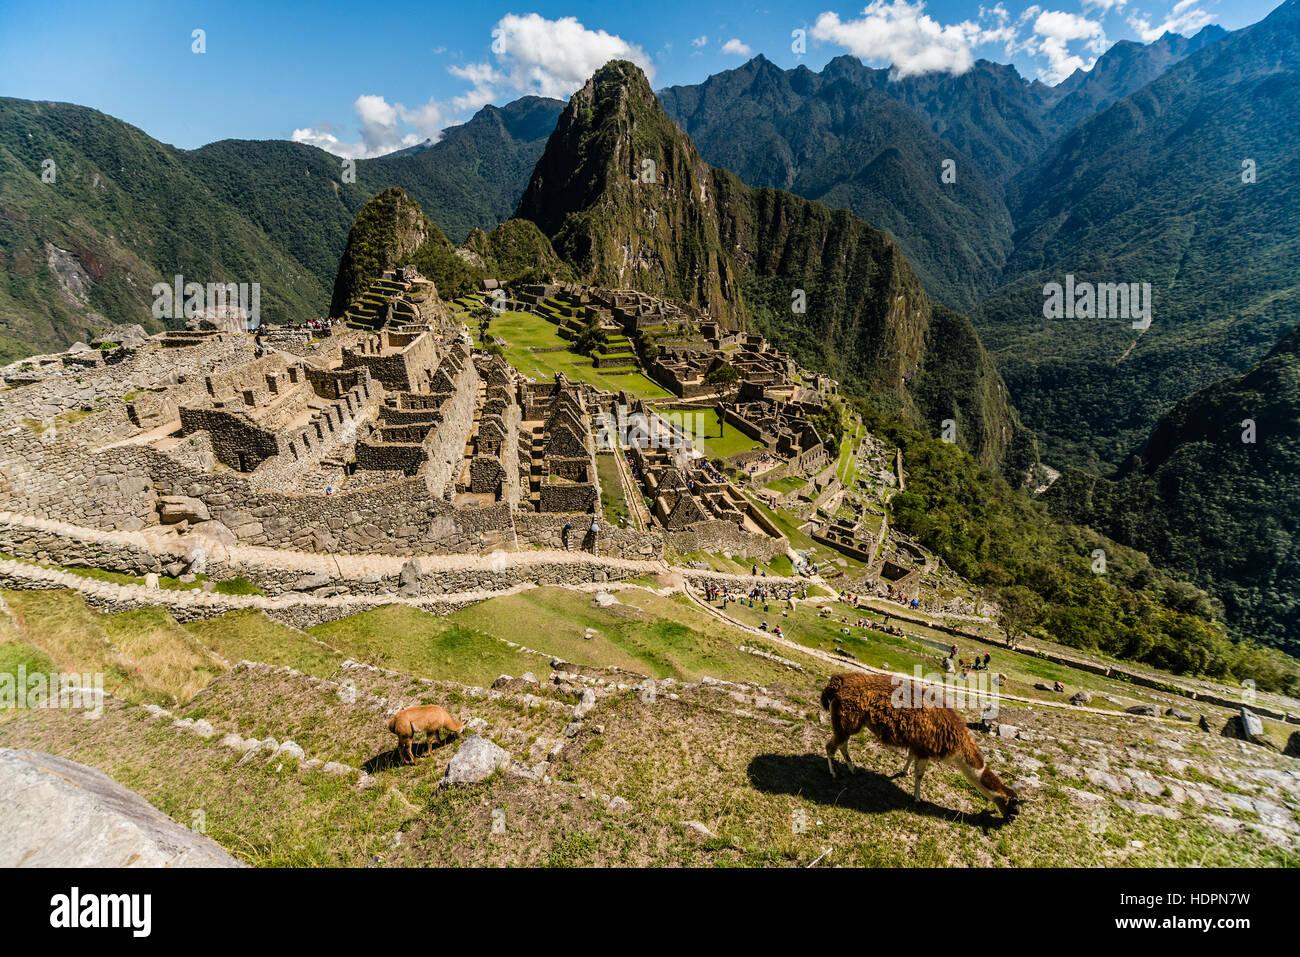 View of the Lost Incan City of Machu Picchu near Cusco, Peru. Machu Picchu is a Peruvian Historical Sanctuary. Llama - Stock Image